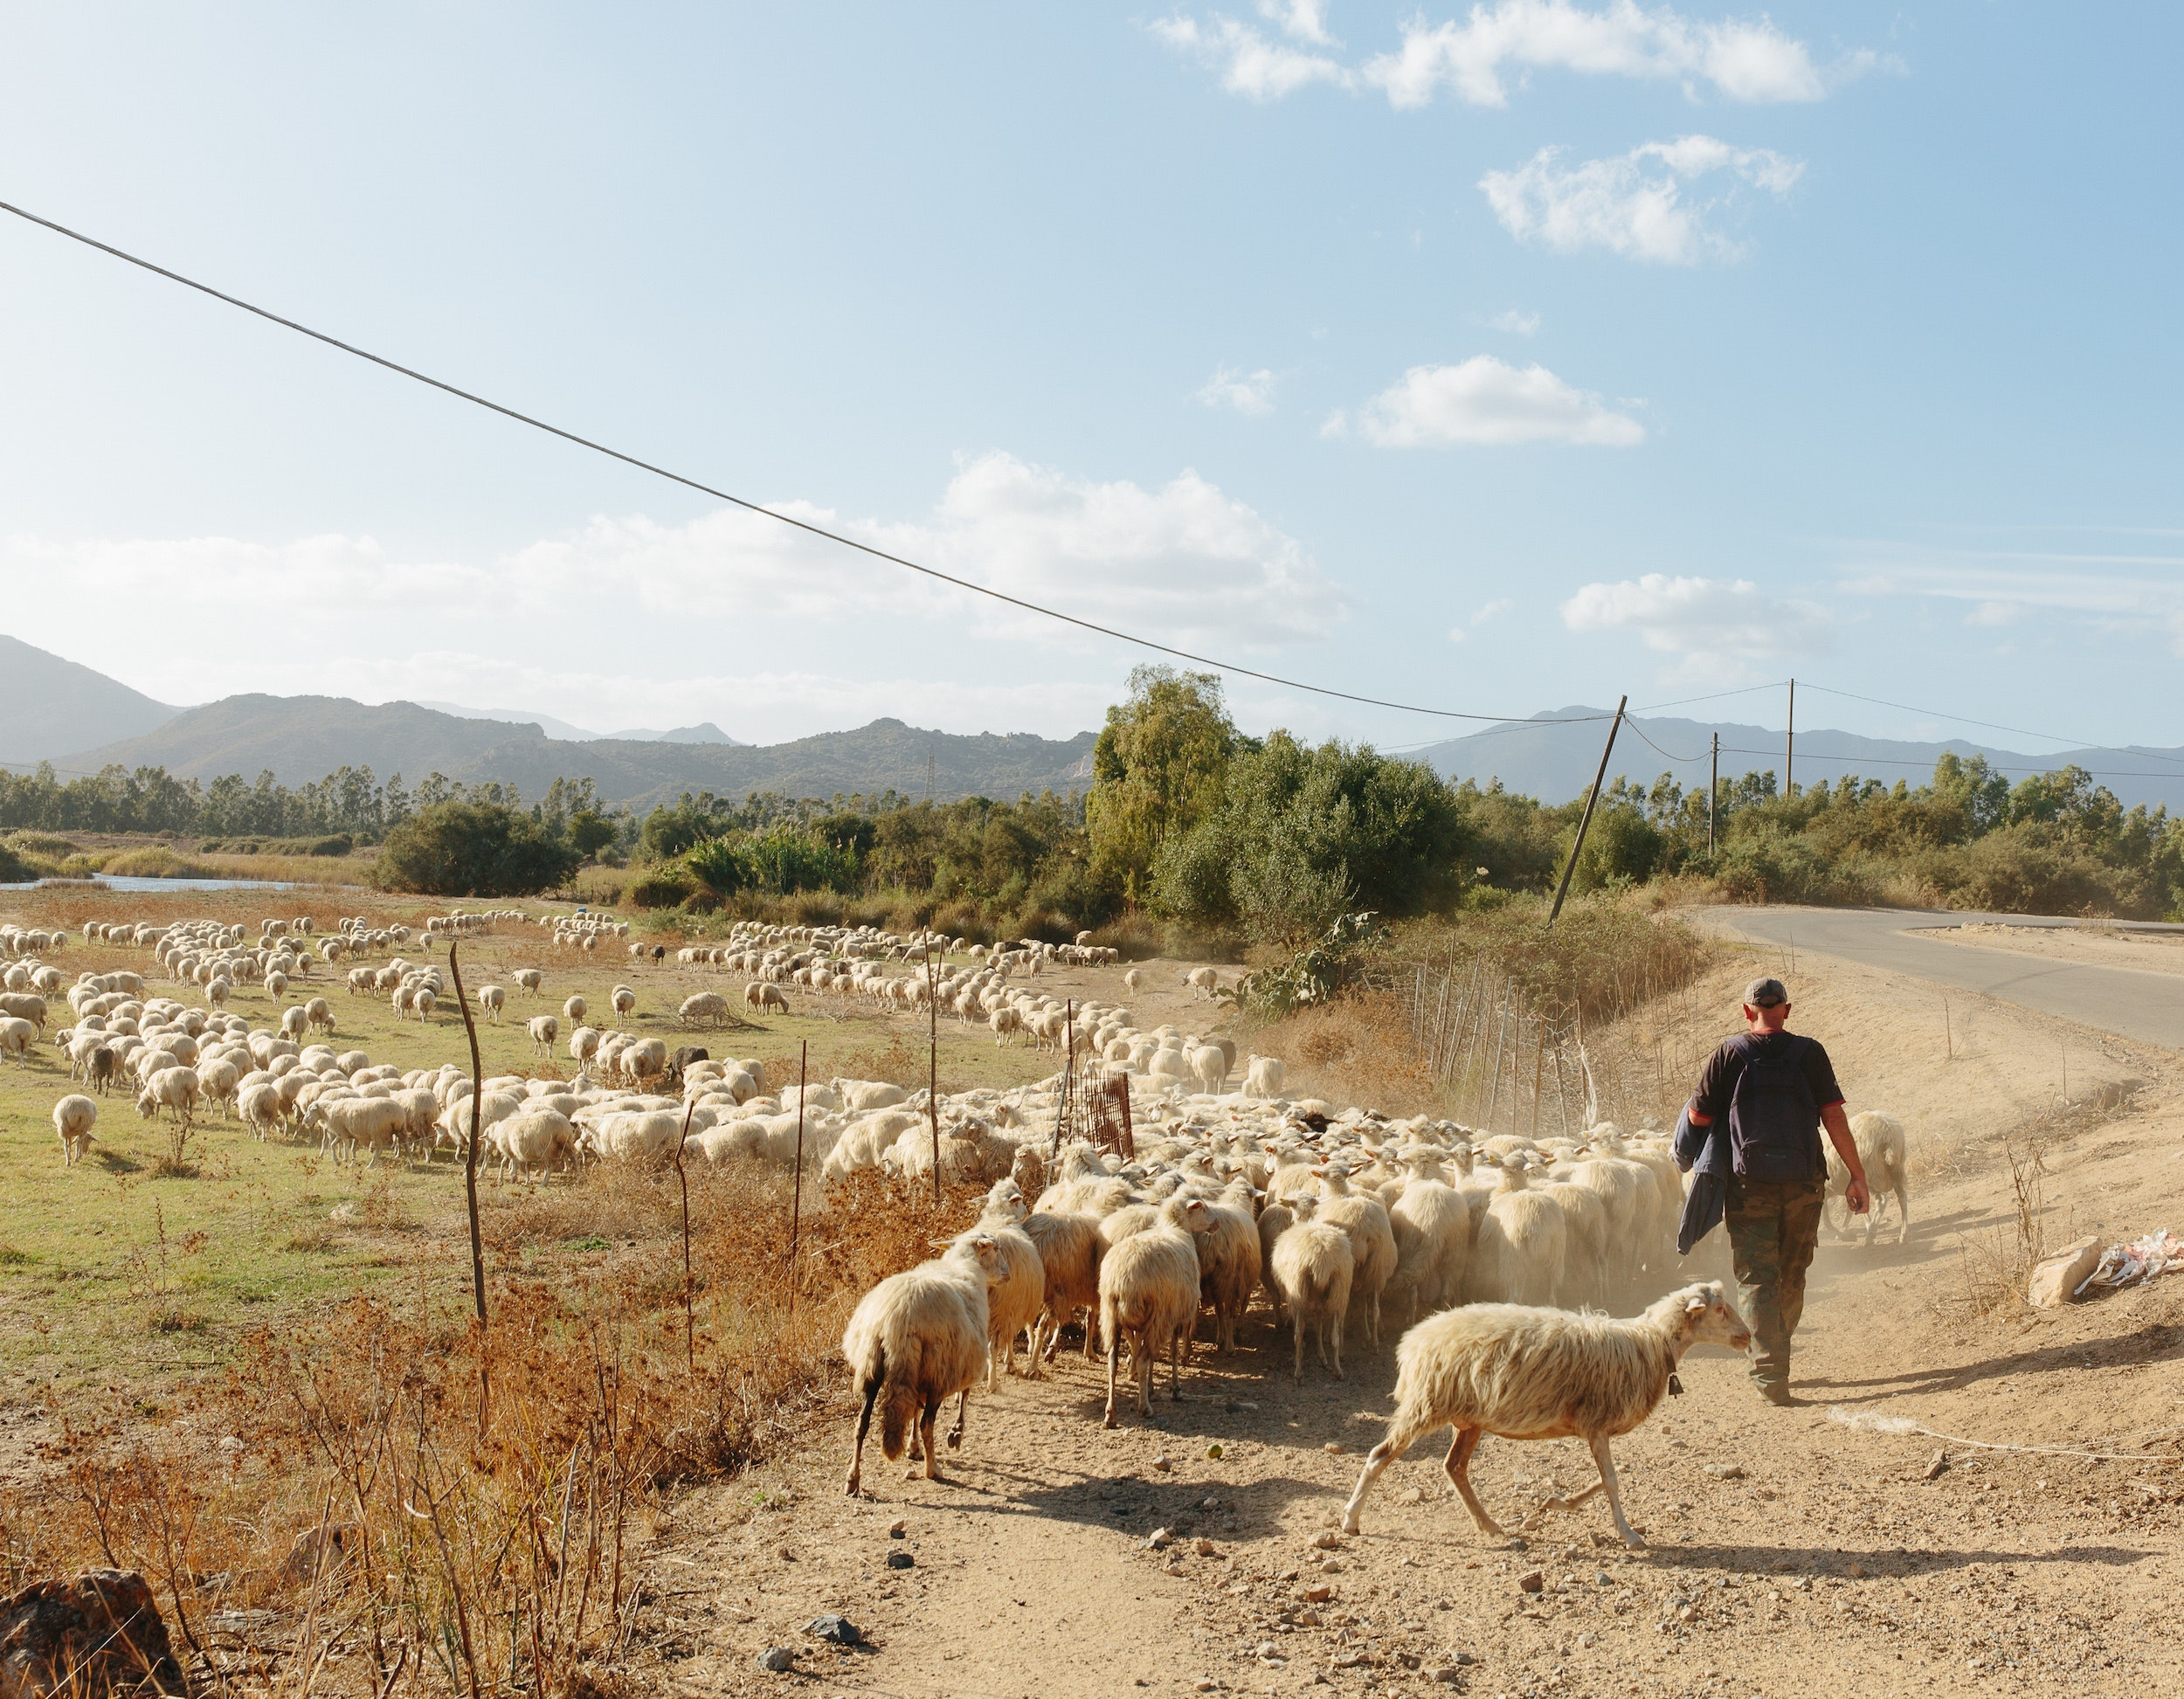 A large sheep herd in southwest Sardinia